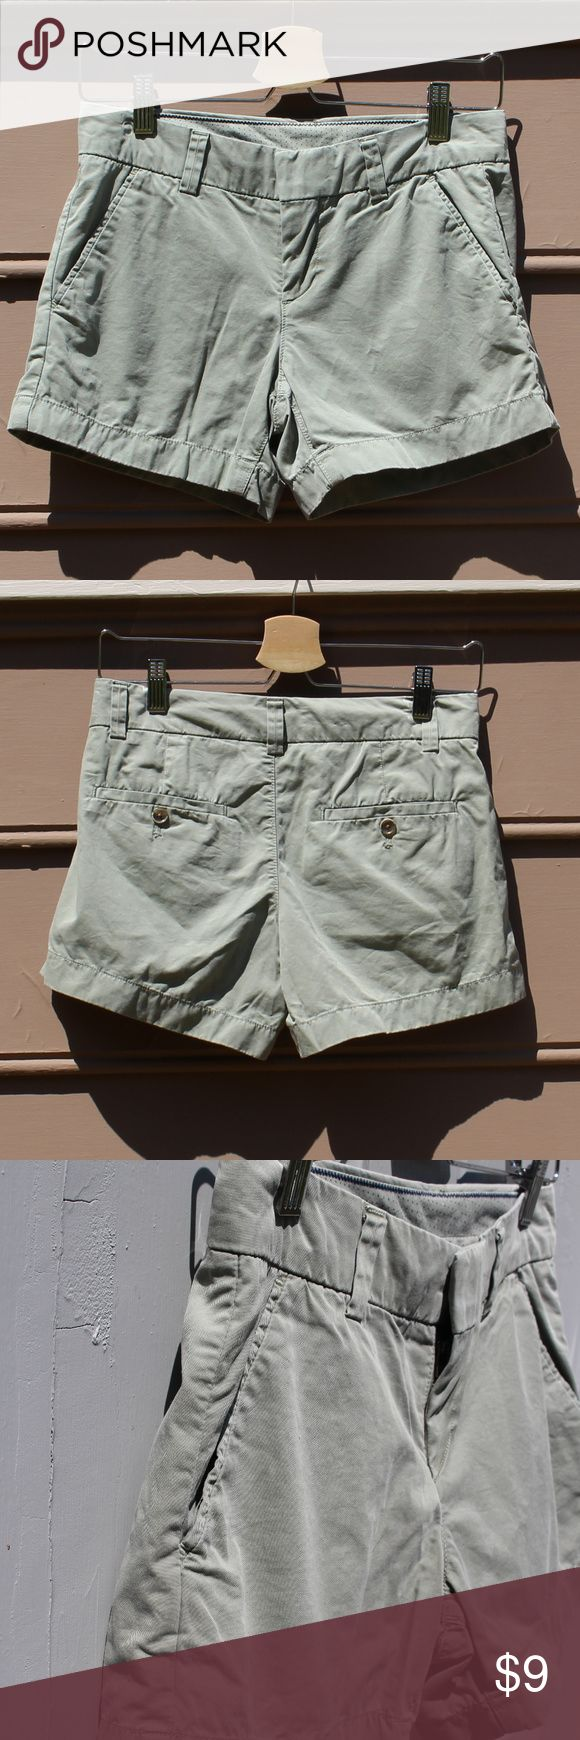 """EUC Uniqlo Olive Chino Shorts Perfect everyday chino shorts by Uniqlo, purchased in Tokyo. Very comfortable. 100% Cotton. Gently worn and washed only a few times. Excellent condition. Measurements: Inseam 4"""", Rise 8.5"""". 15"""" at waist laying flat. Japanese size 61cm, fits like US size 0.  Sorry, no trade! Uniqlo Shorts"""